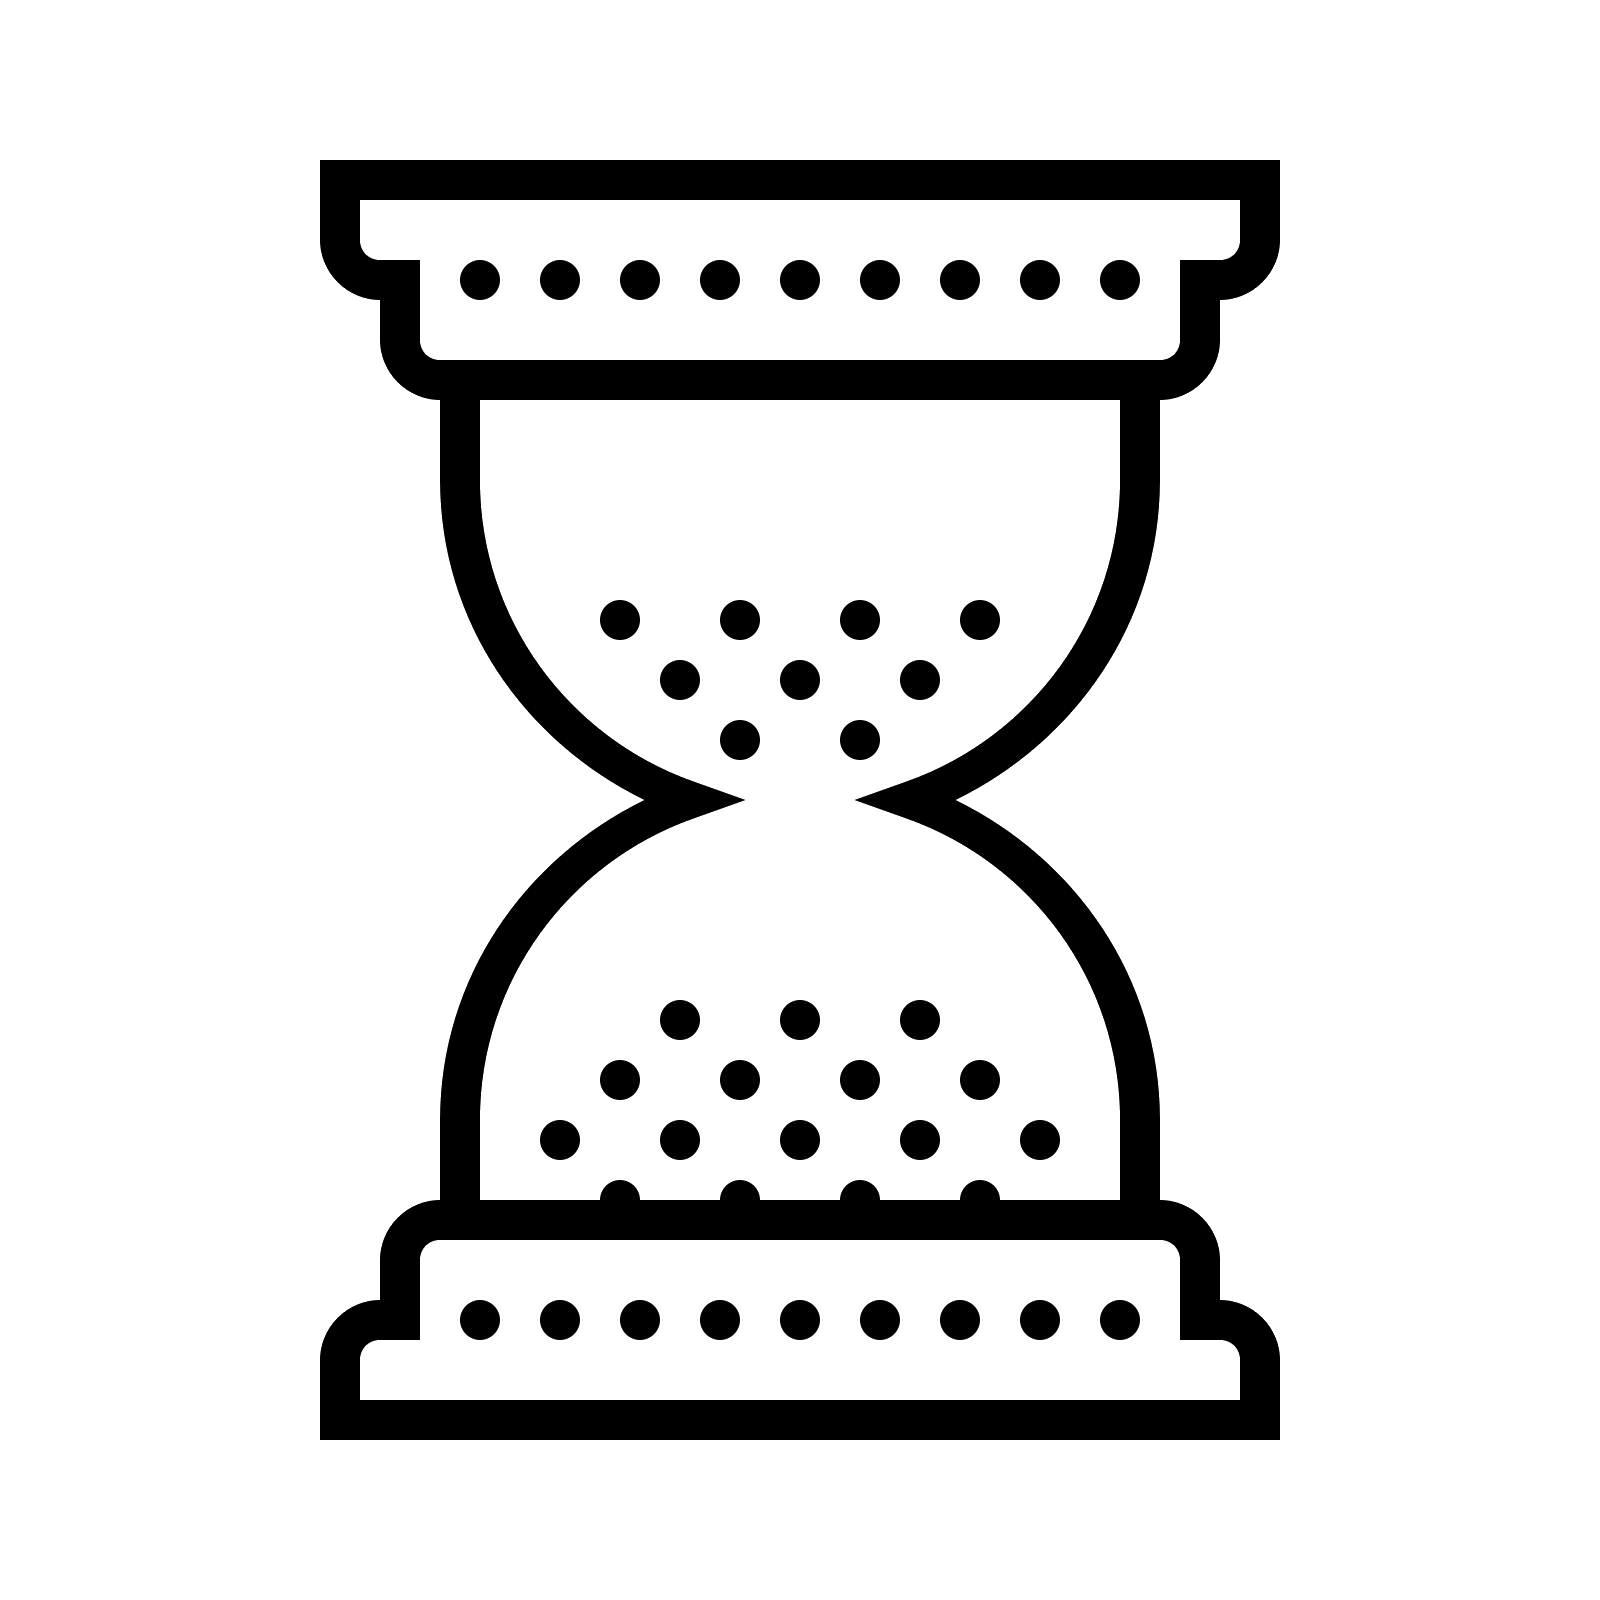 hight resolution of hourglass clipart inevitable png royalty free